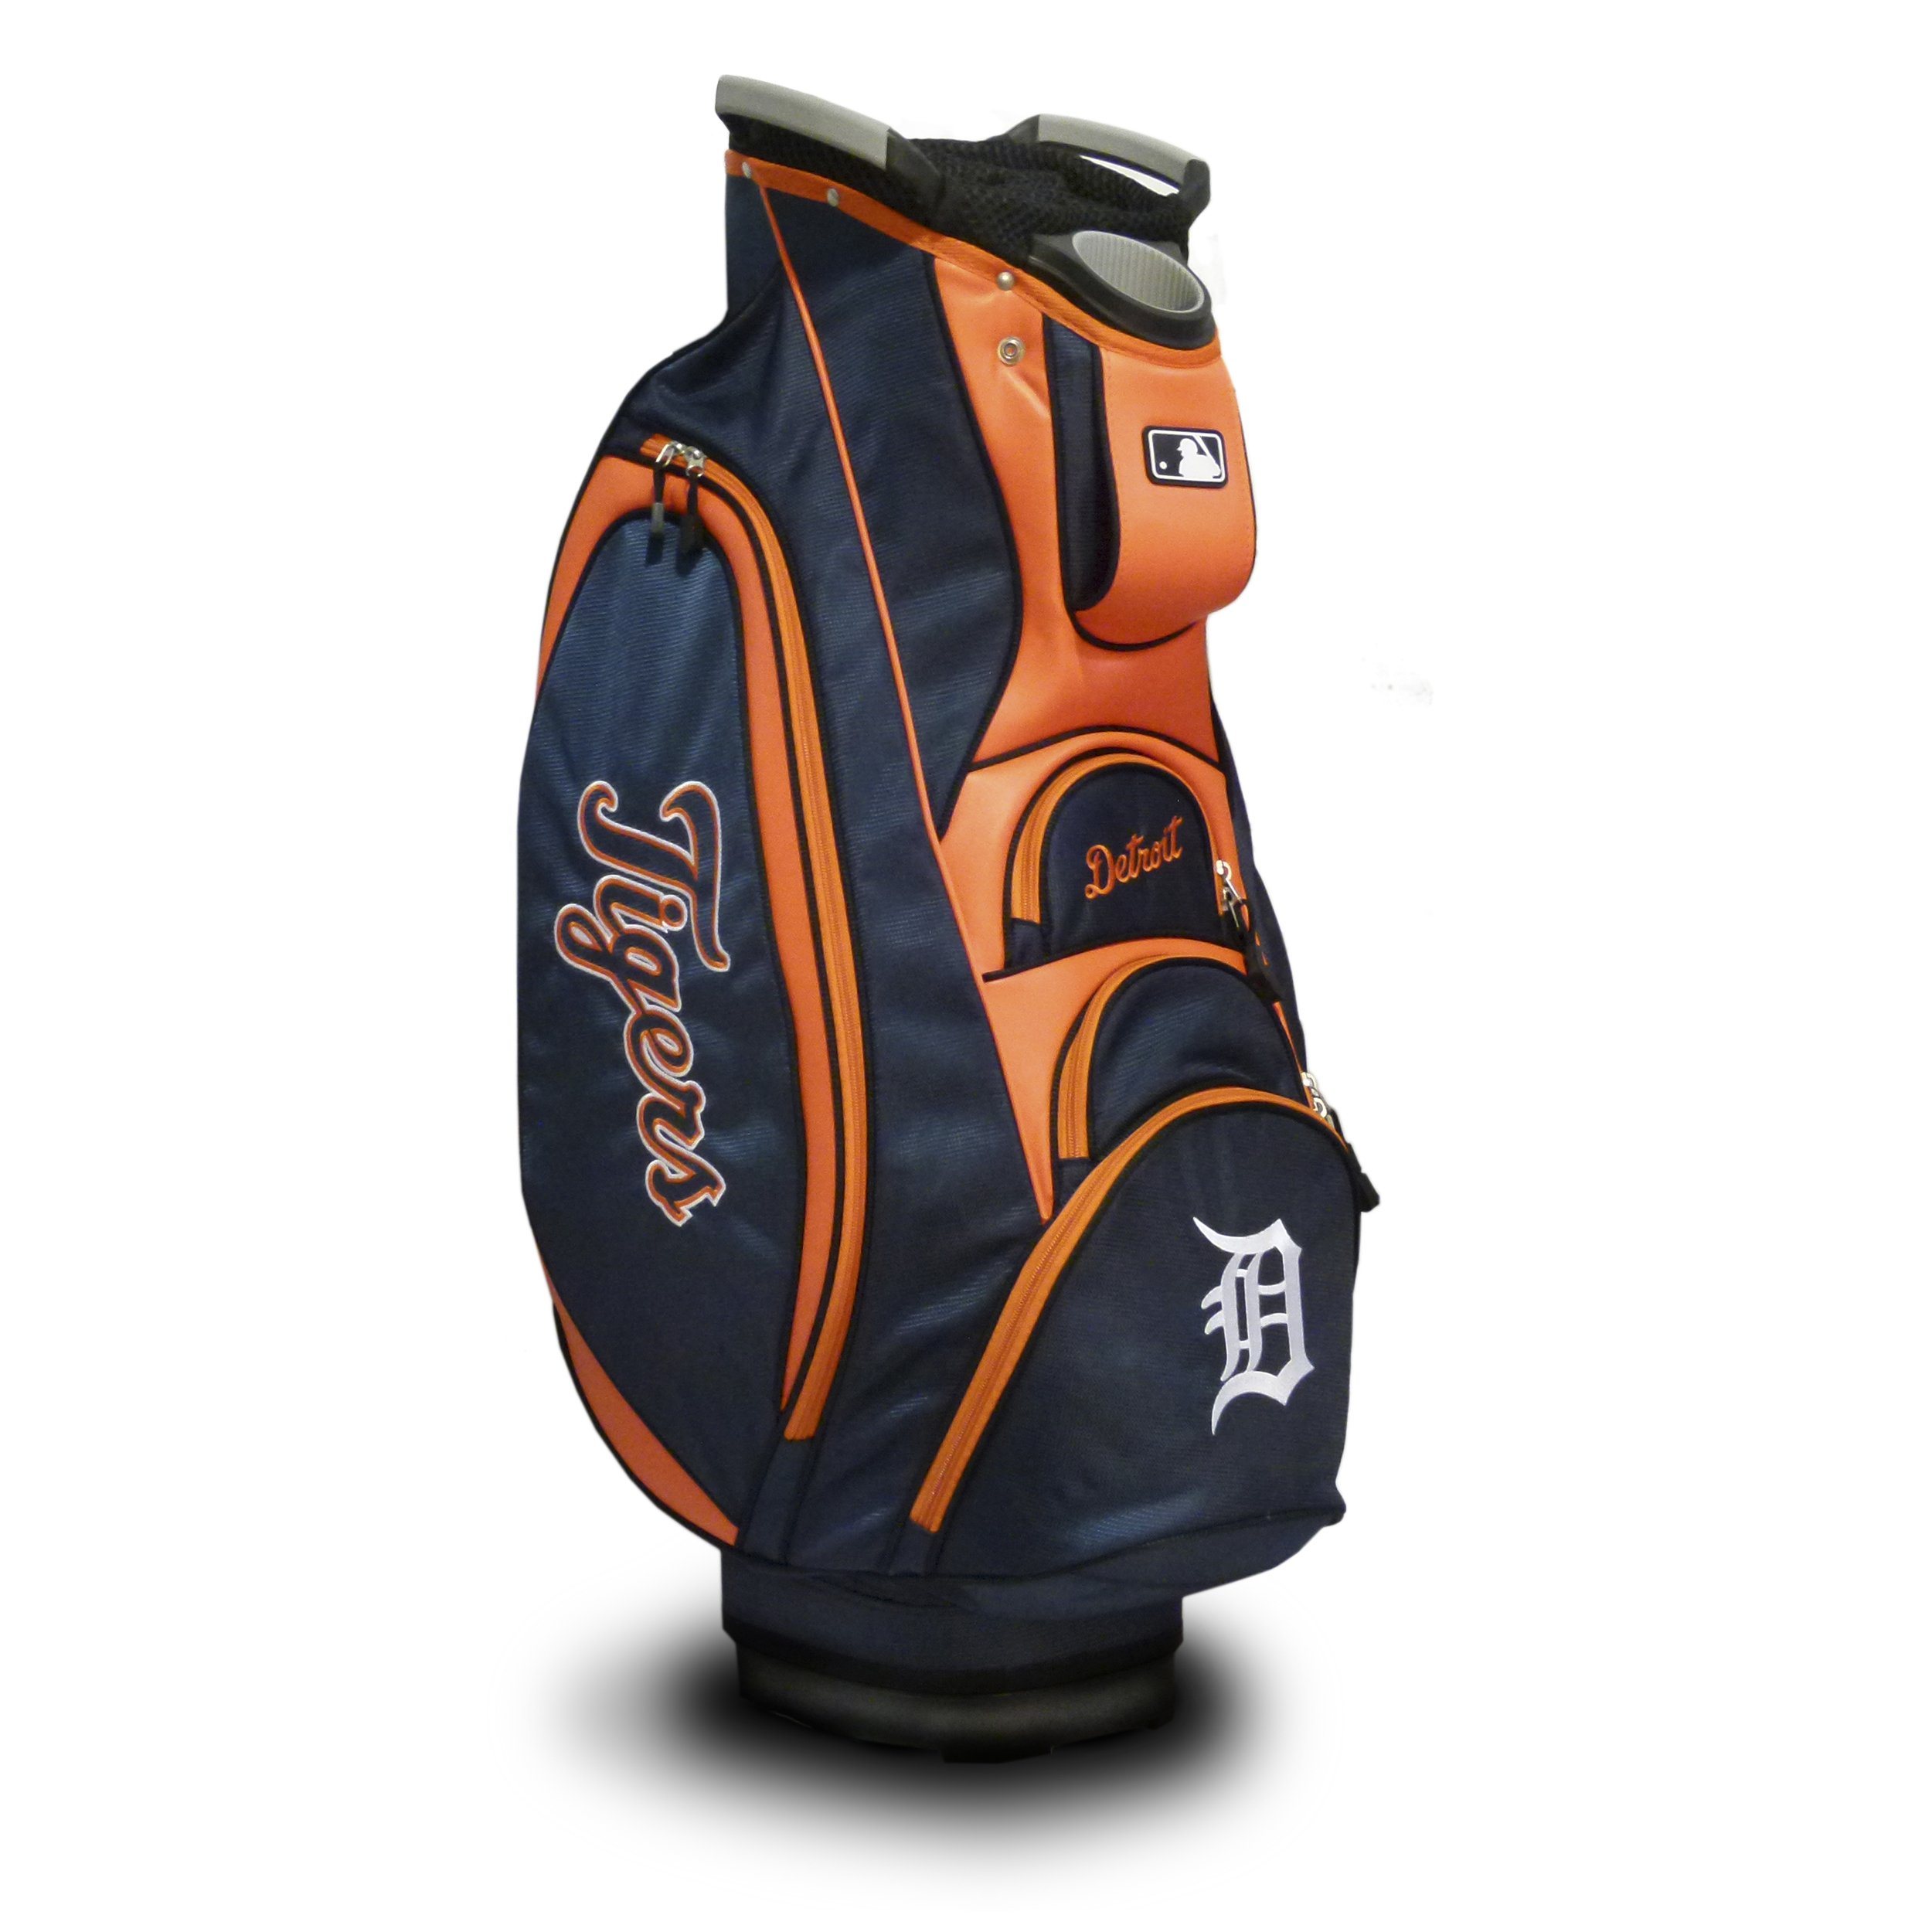 Team Golf MLB Detroit Tigers Victory Golf Cart Bag, 10-way Top with Integrated Dual Handle & External Putter Well, Cooler Pocket, Padded Strap, Umbrella Holder & Removable Rain Hood